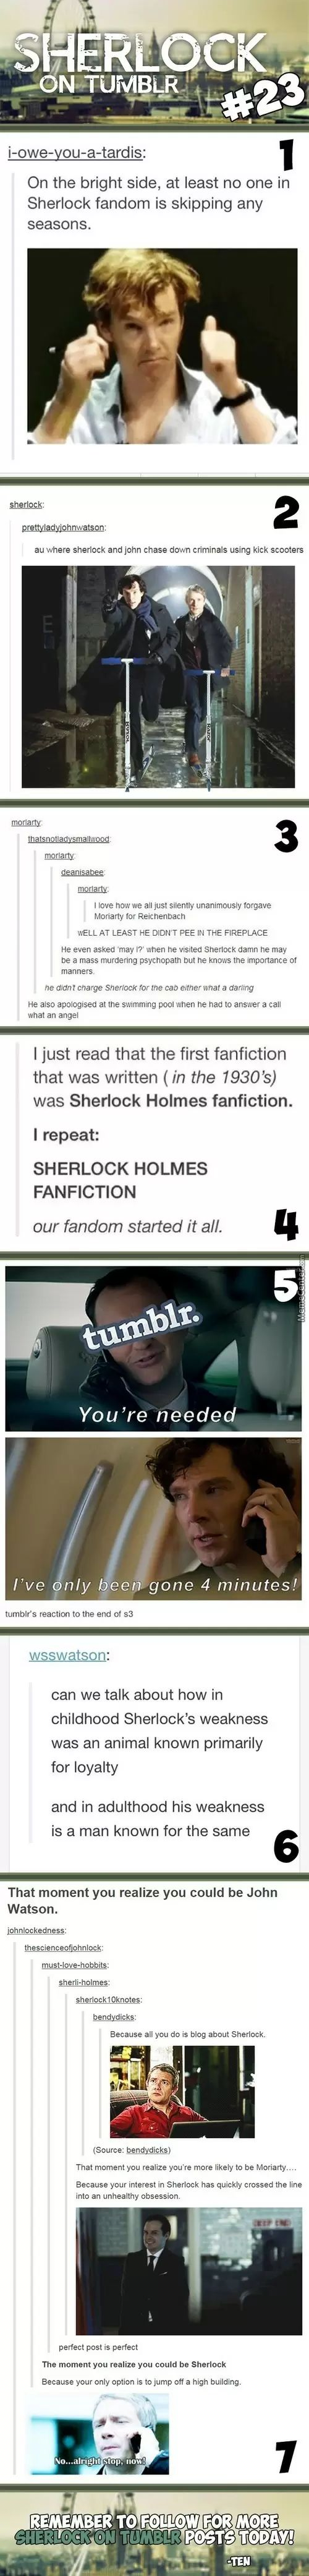 Sherlock On Tumblr #23